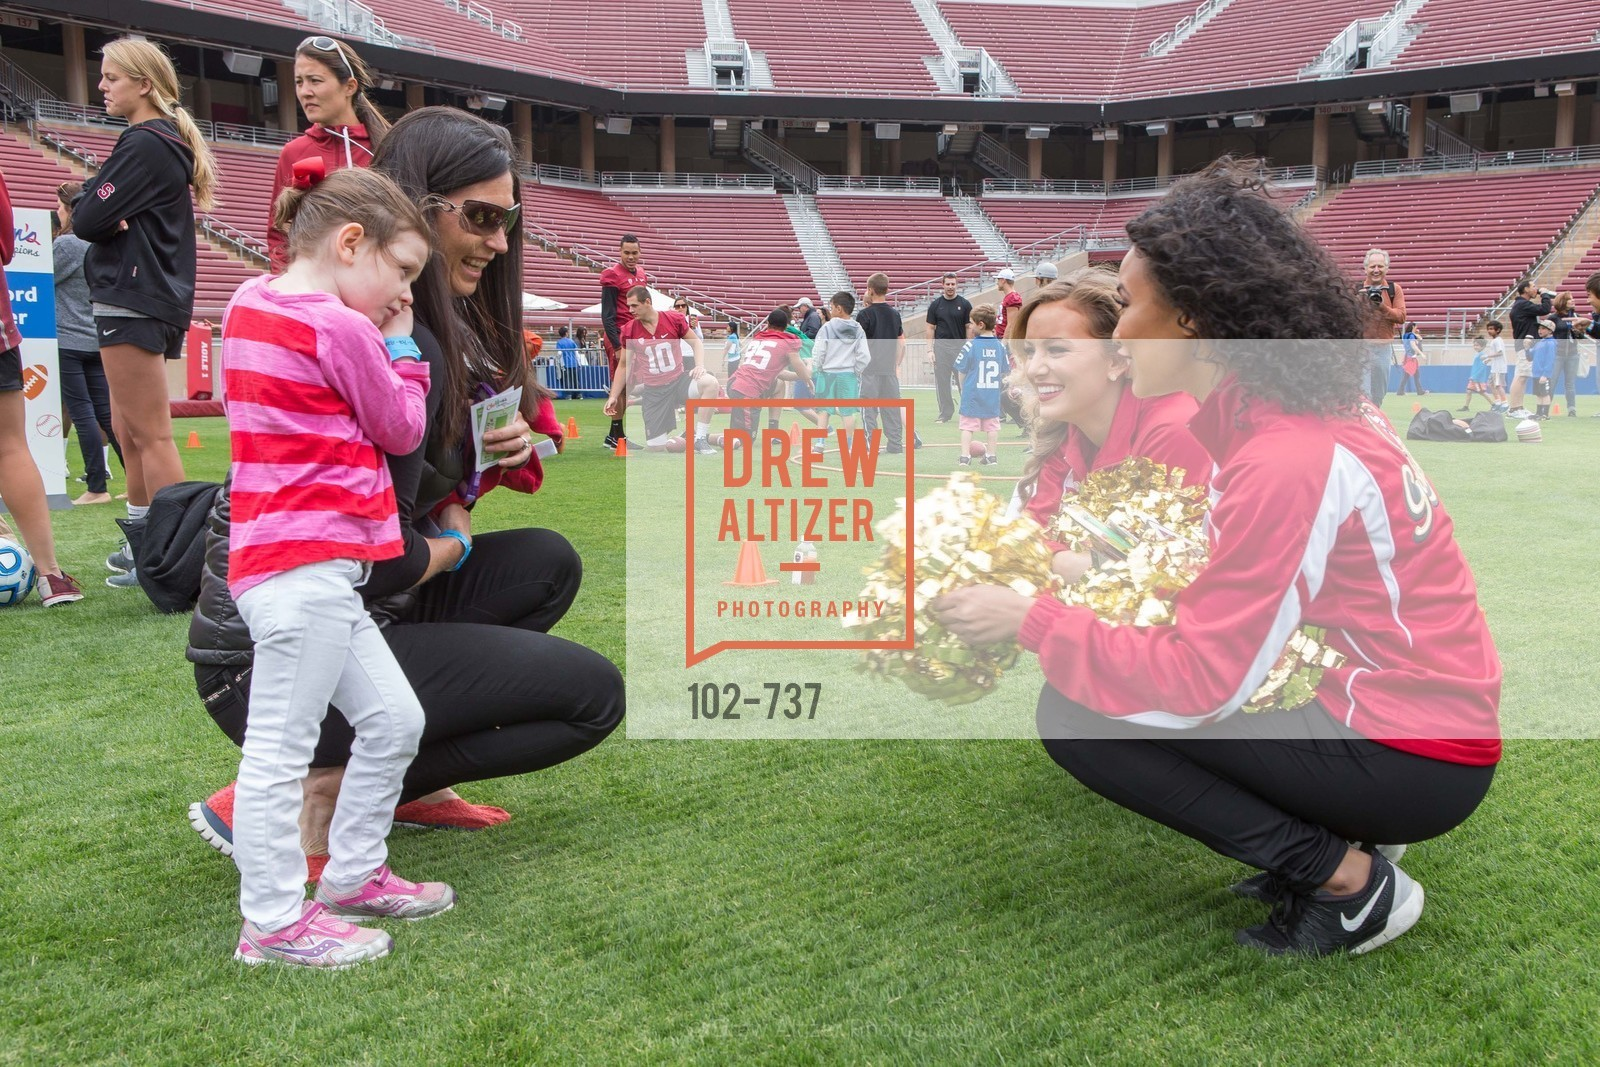 Ashley Clugage, Kelley Clugage, Children's Champions, US, May 17th, 2015,Drew Altizer, Drew Altizer Photography, full-service agency, private events, San Francisco photographer, photographer california